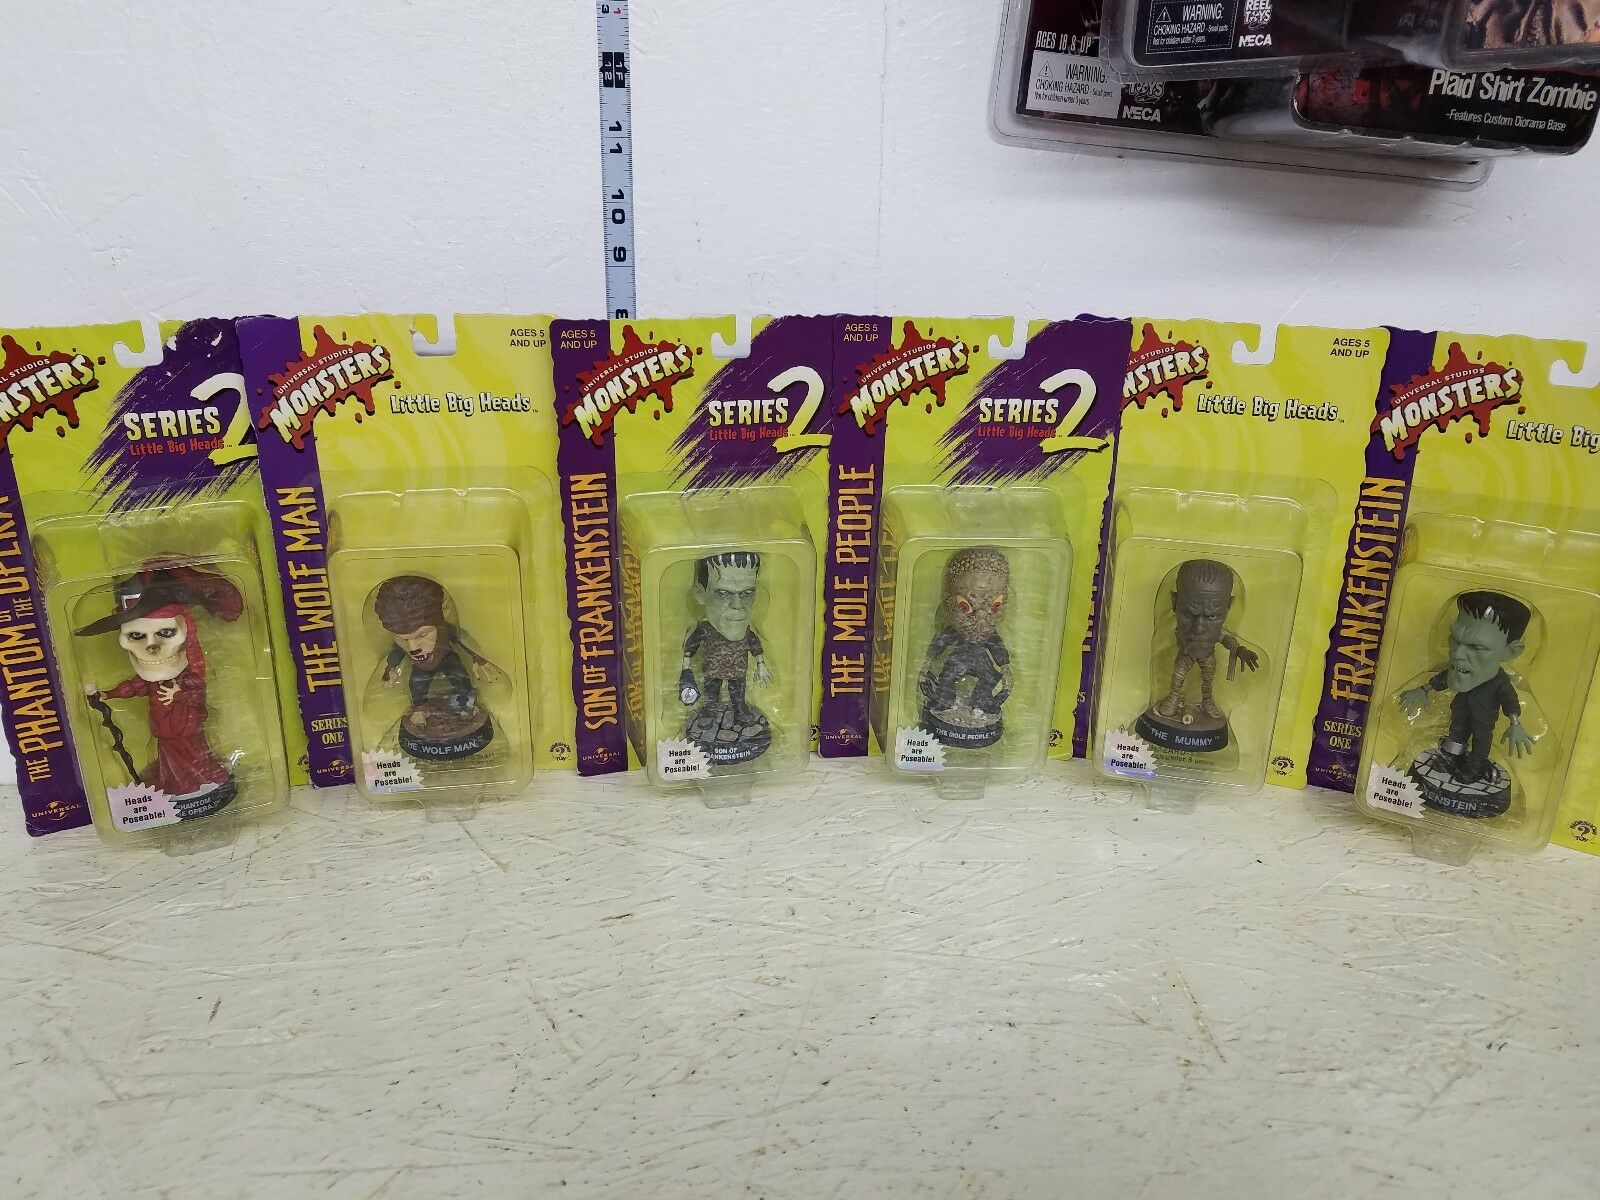 Universal Studios Little Big Heads Set of 6 Figures on the card